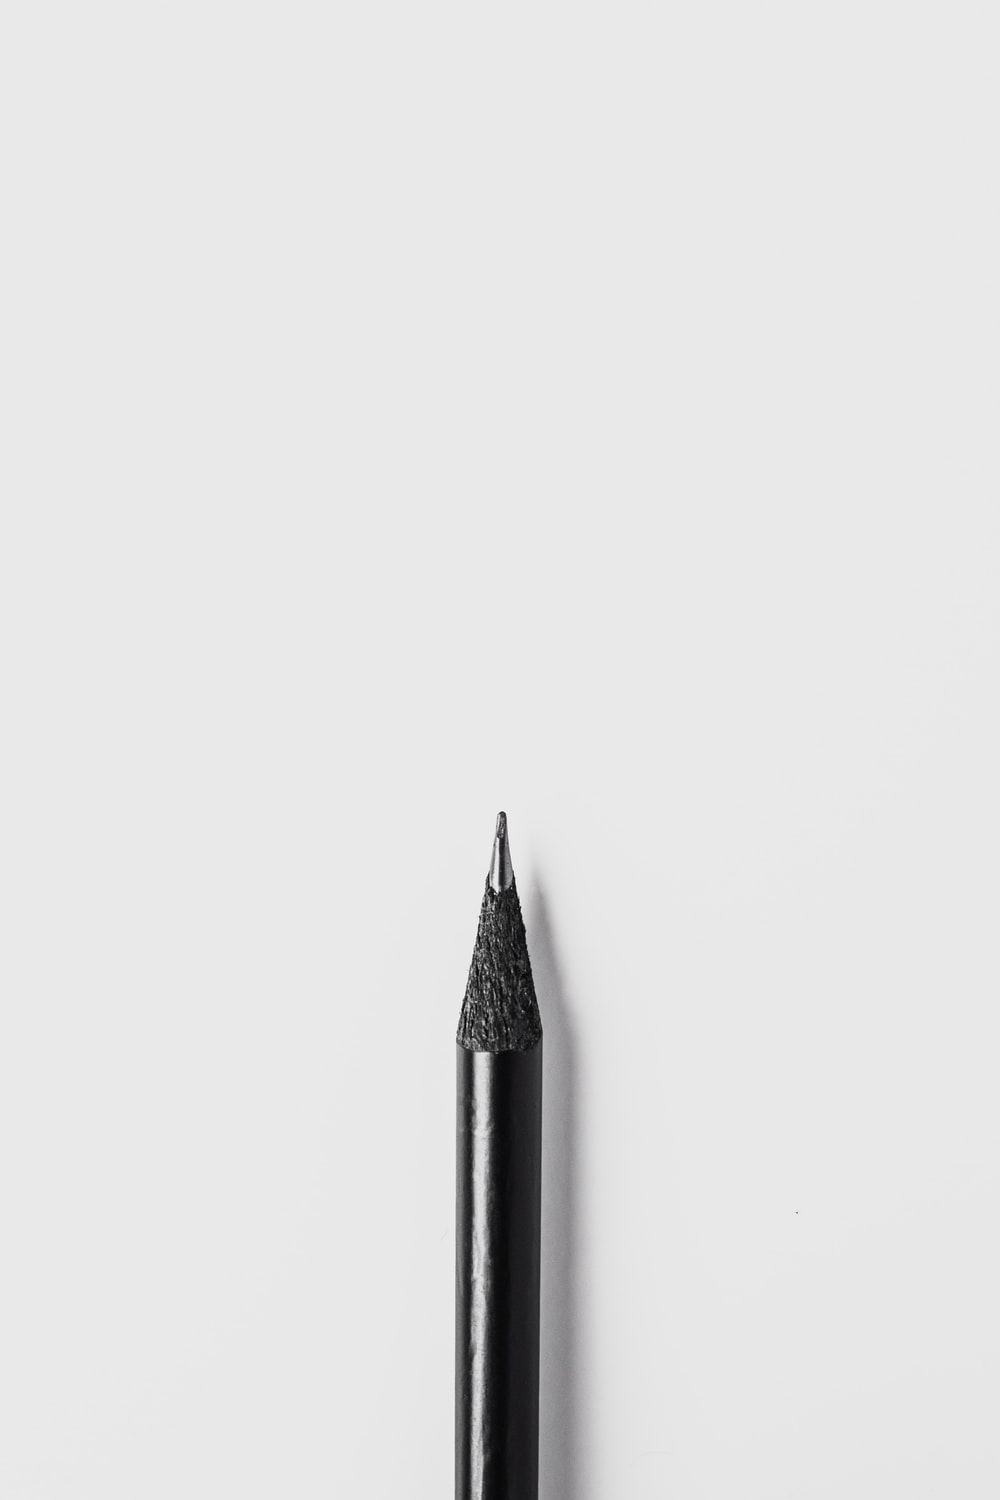 black pencil on white surface